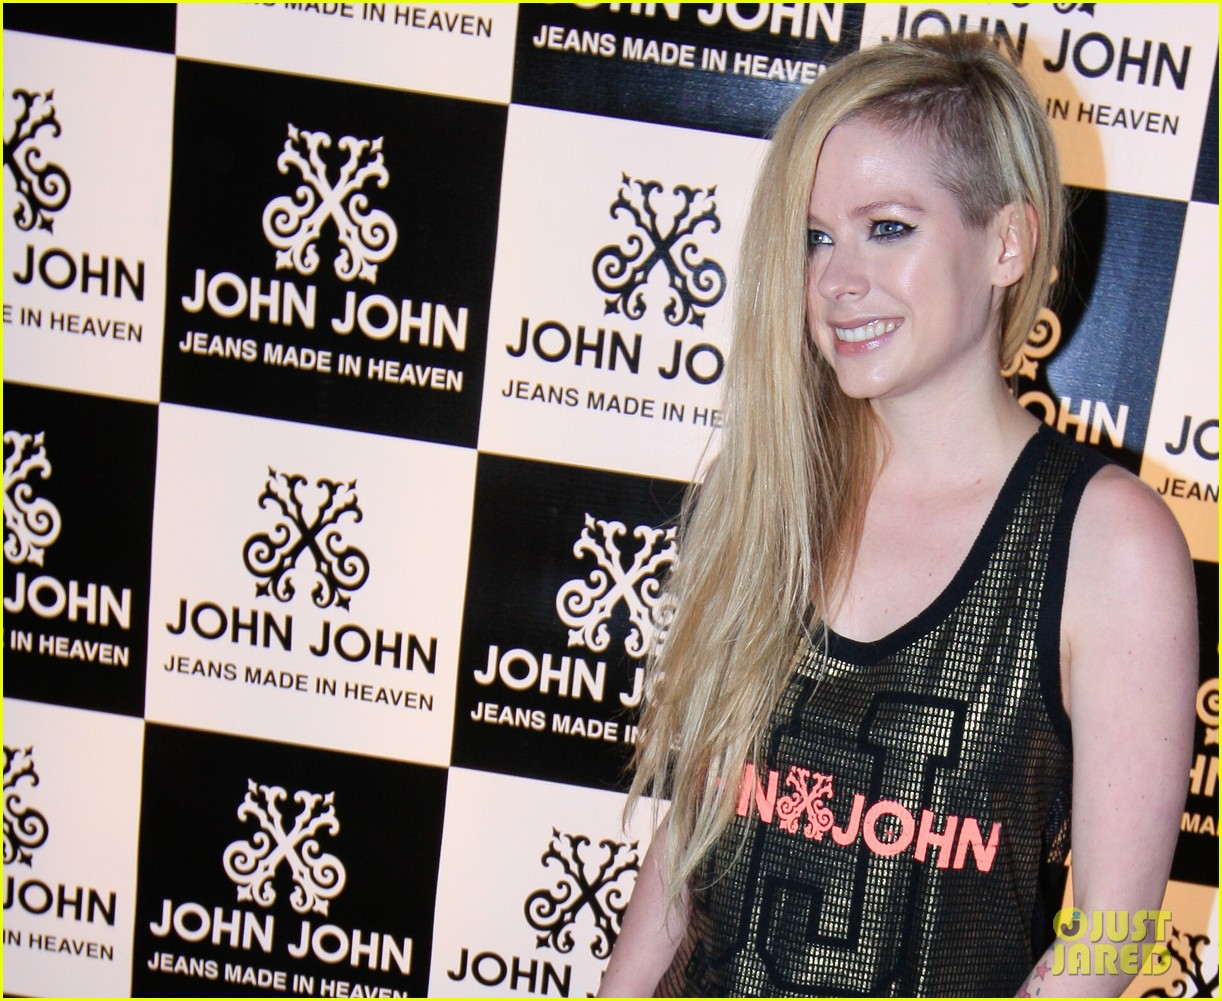 avril lavigne attends event in rio after music video controversy 123101951